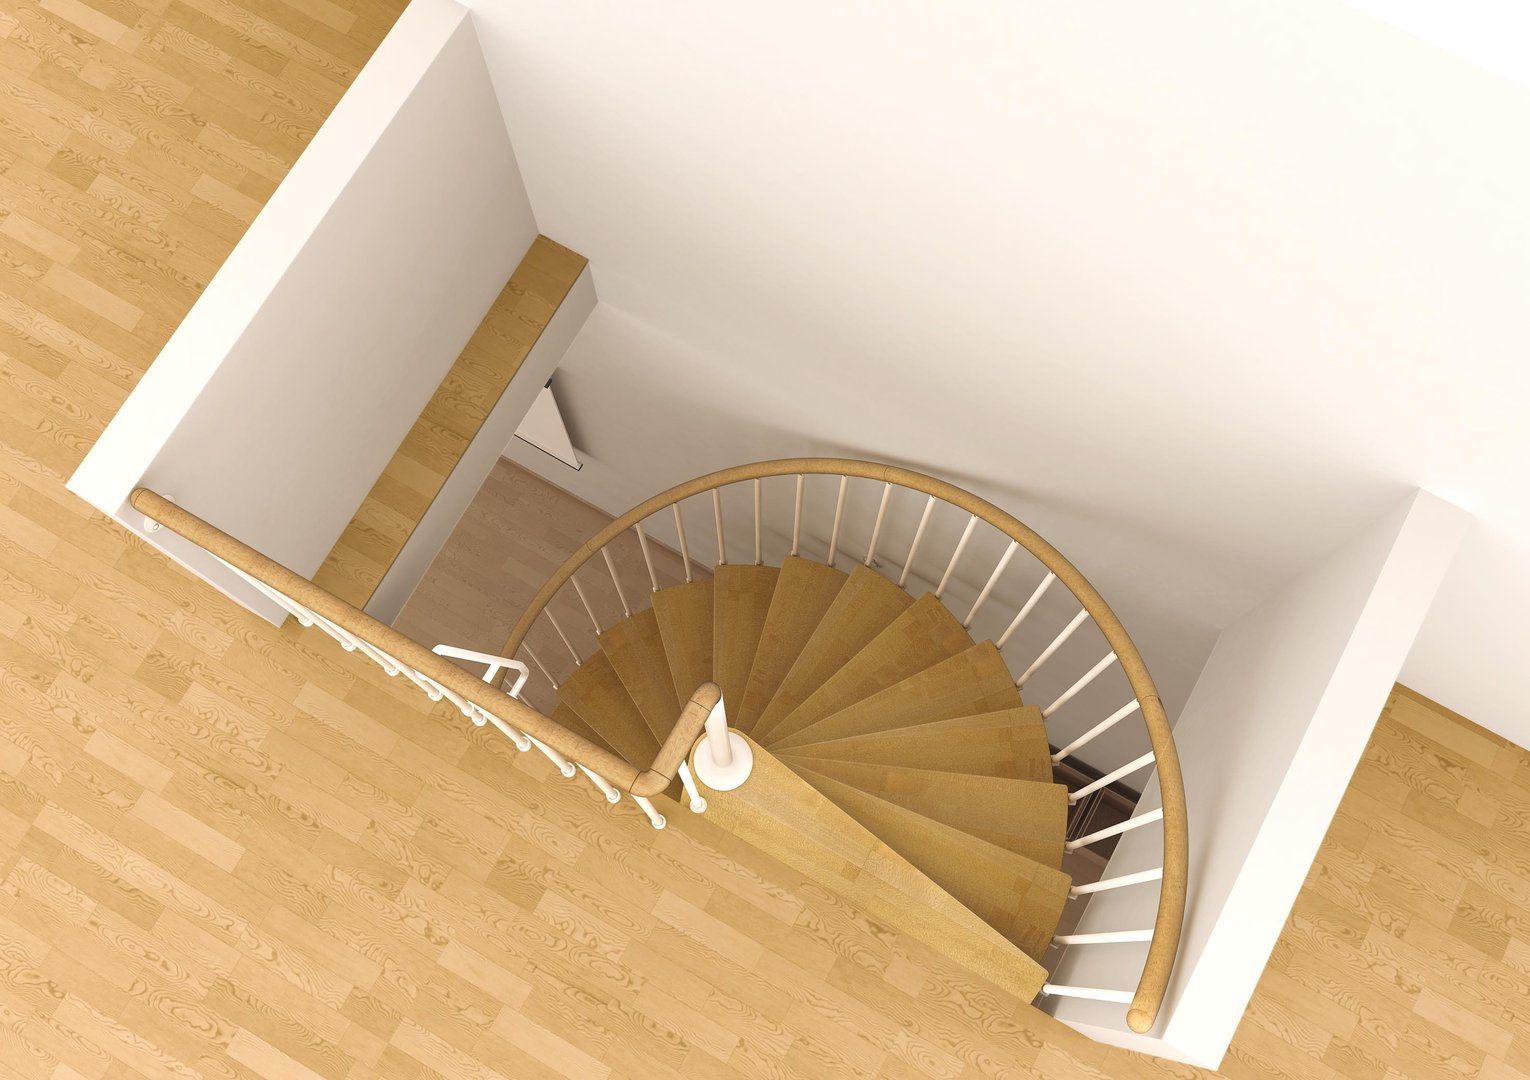 Space saving spiral staircase type toscana l00l stairs - Space saving stair design ...